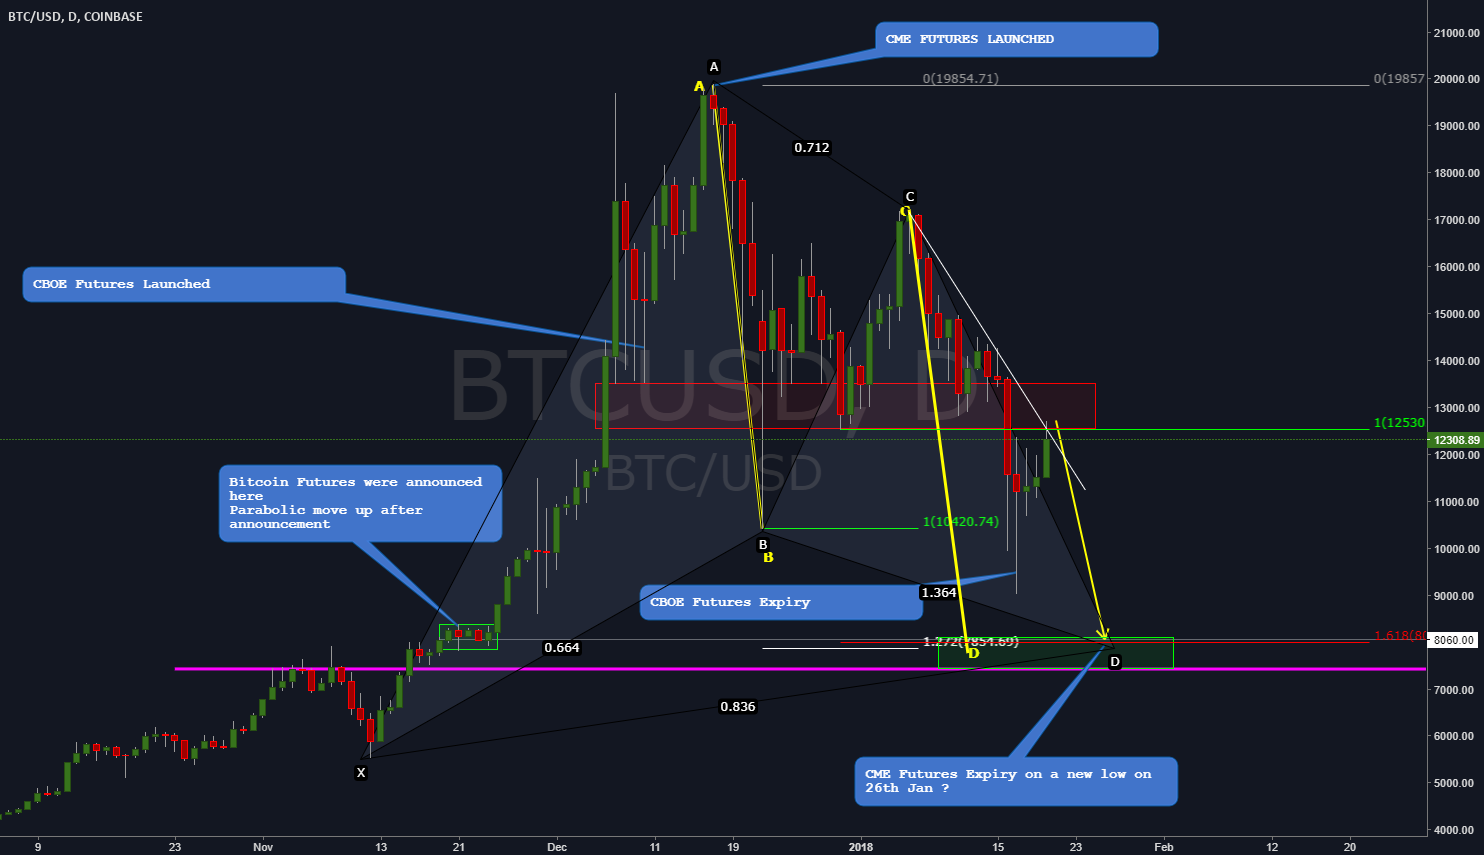 BTCUSD - Potential new low on 26th of January ?